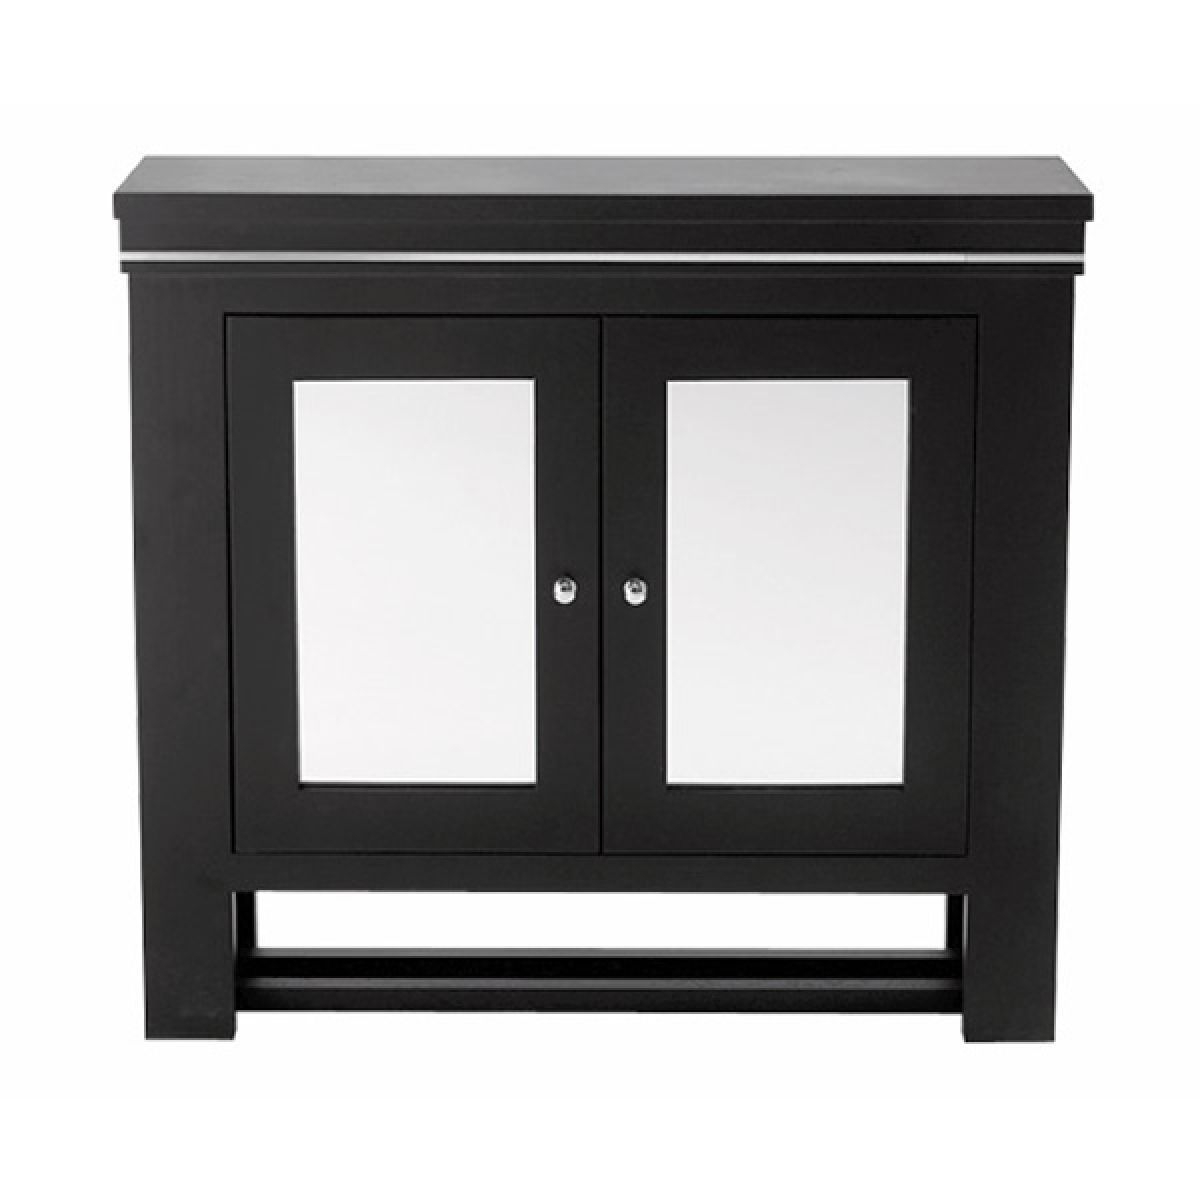 Imperial astoria deco harmony mirror wall cabinet 2 doors - Wall cabinet with mirror for bathroom ...